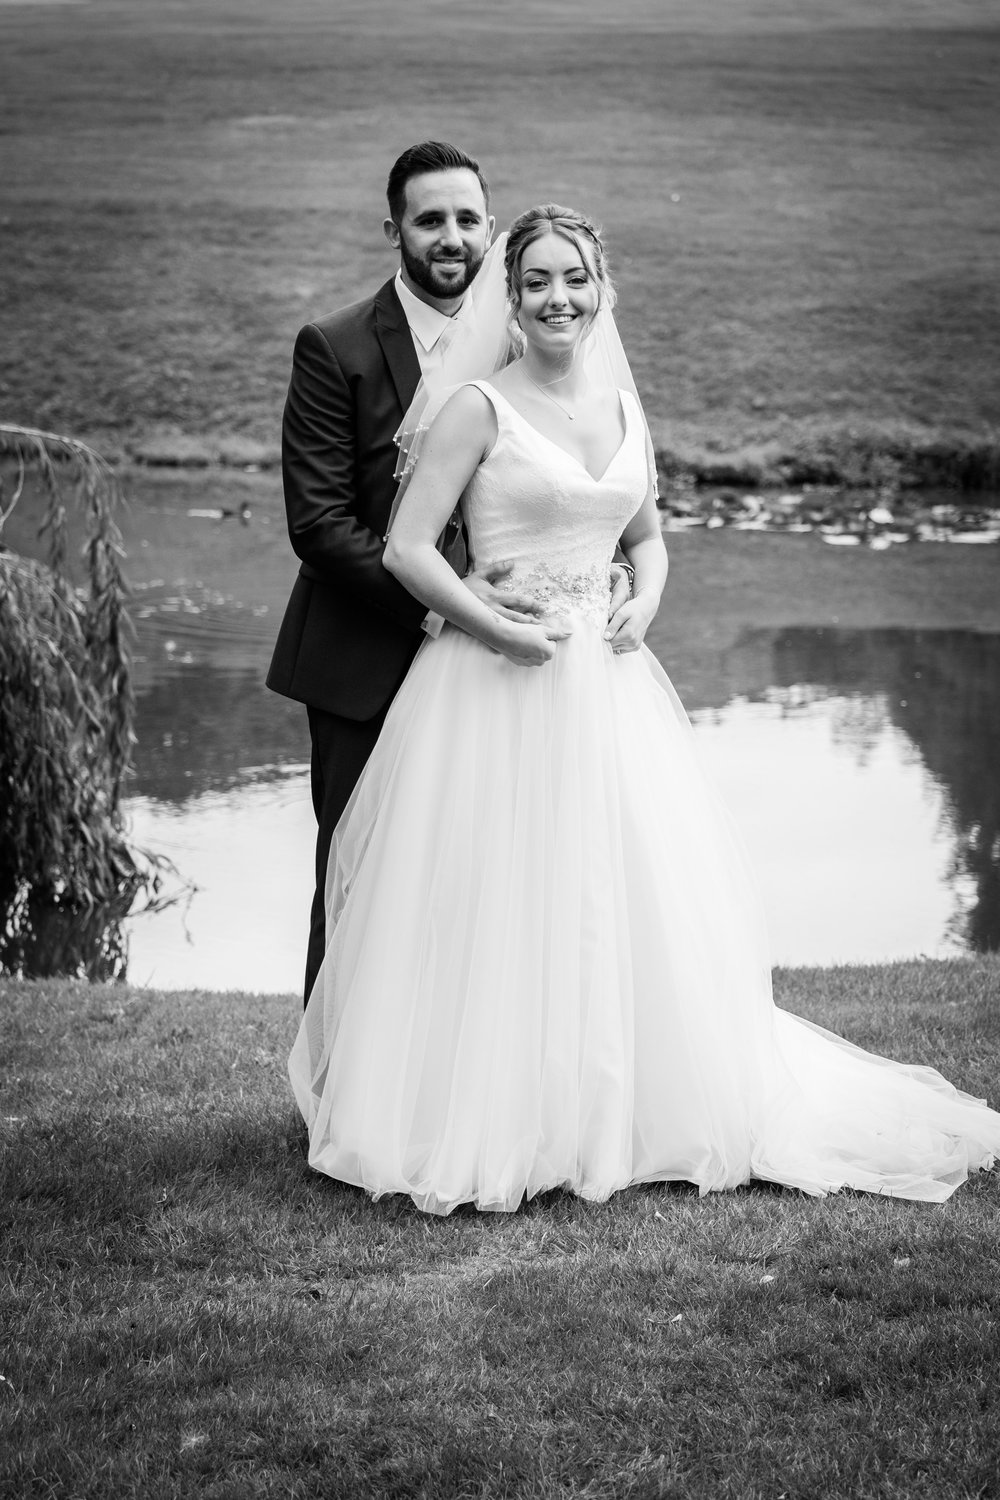 Warren golf and country club wedding photography, Essex